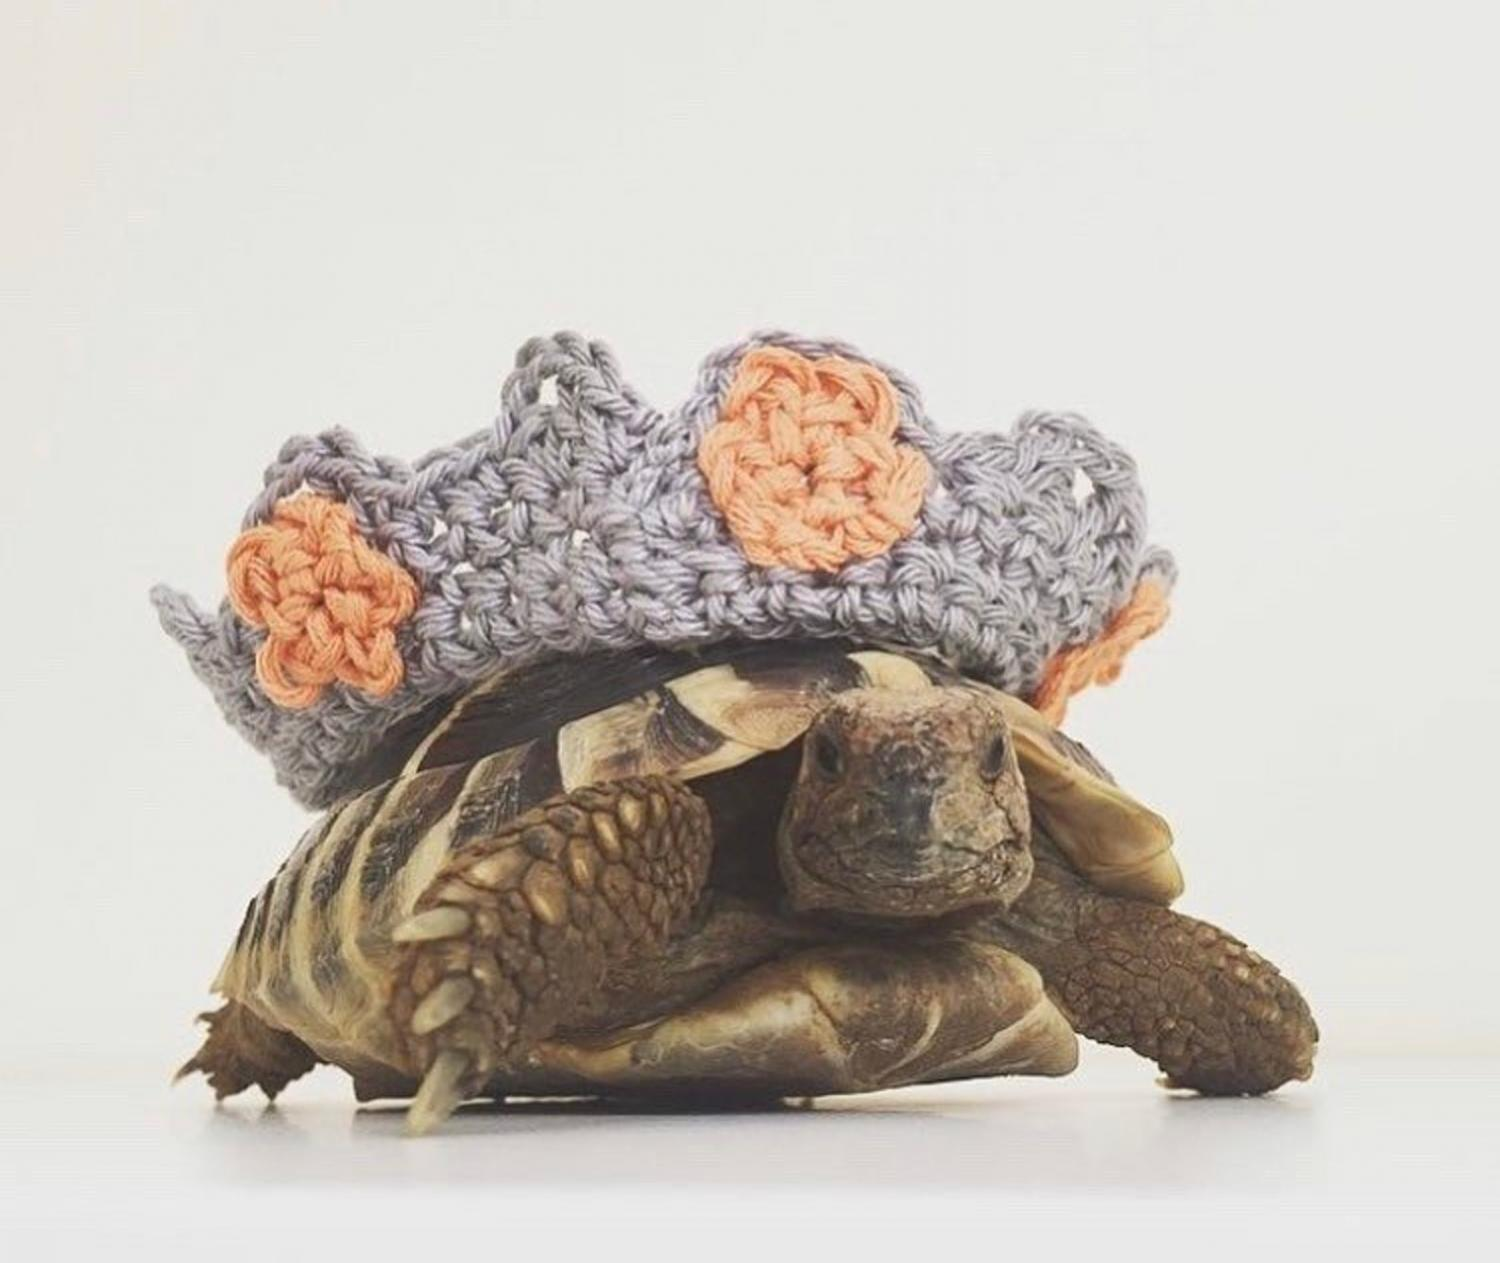 Crochet Turtle Sweater - Crown tortoise cozy